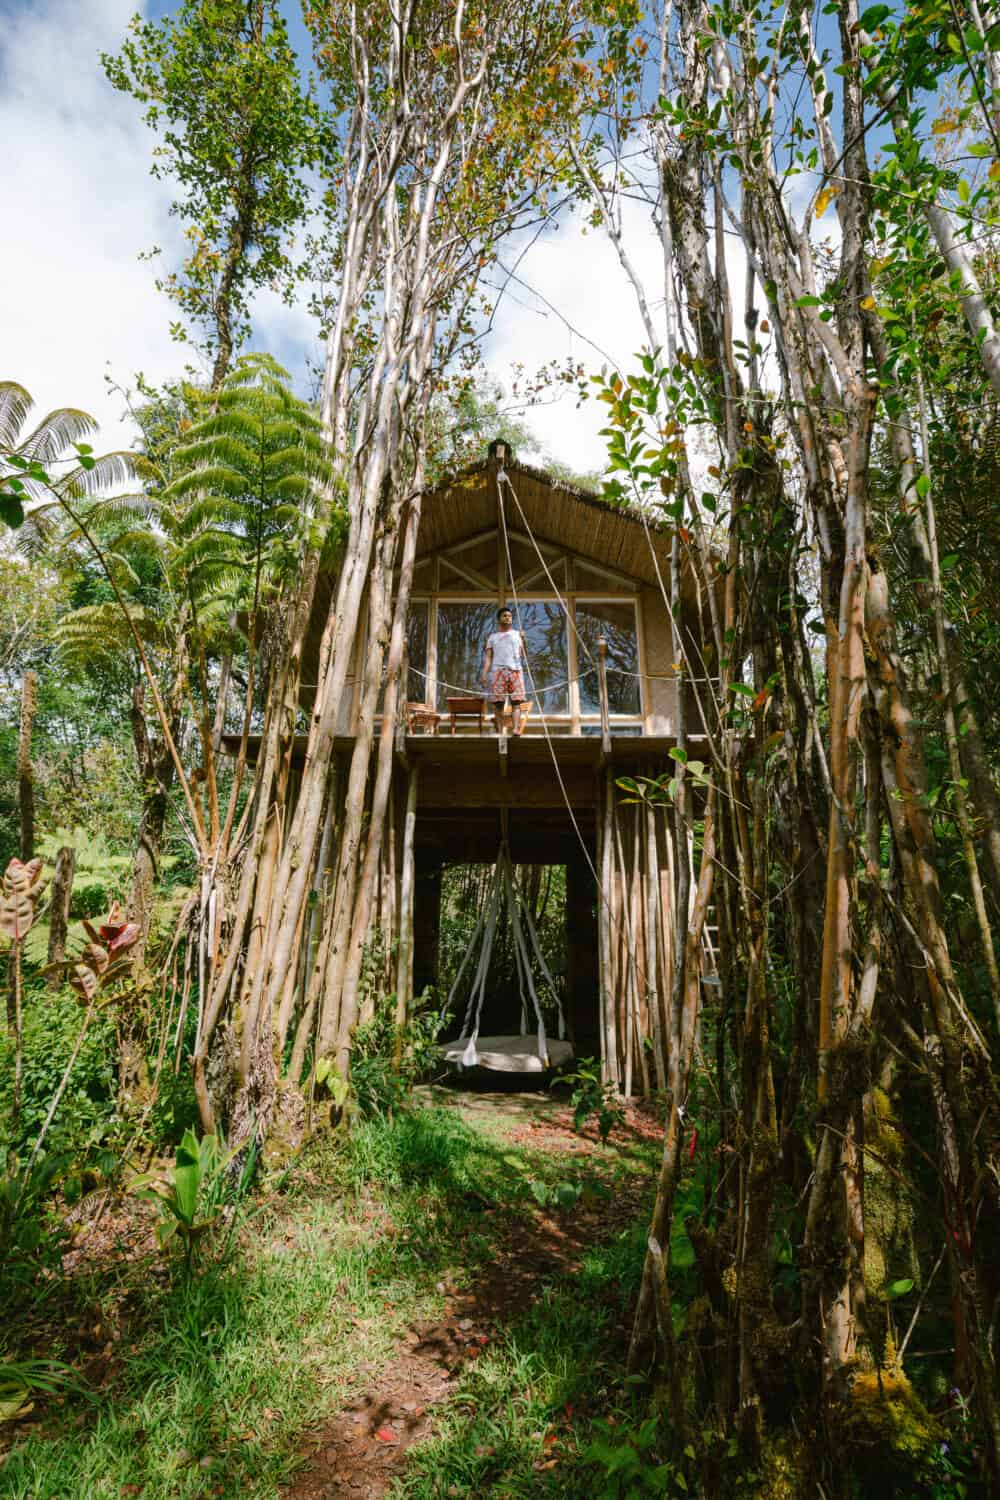 Berty Mandagie standing at treehouse in Hawaii - TheMandagies.com